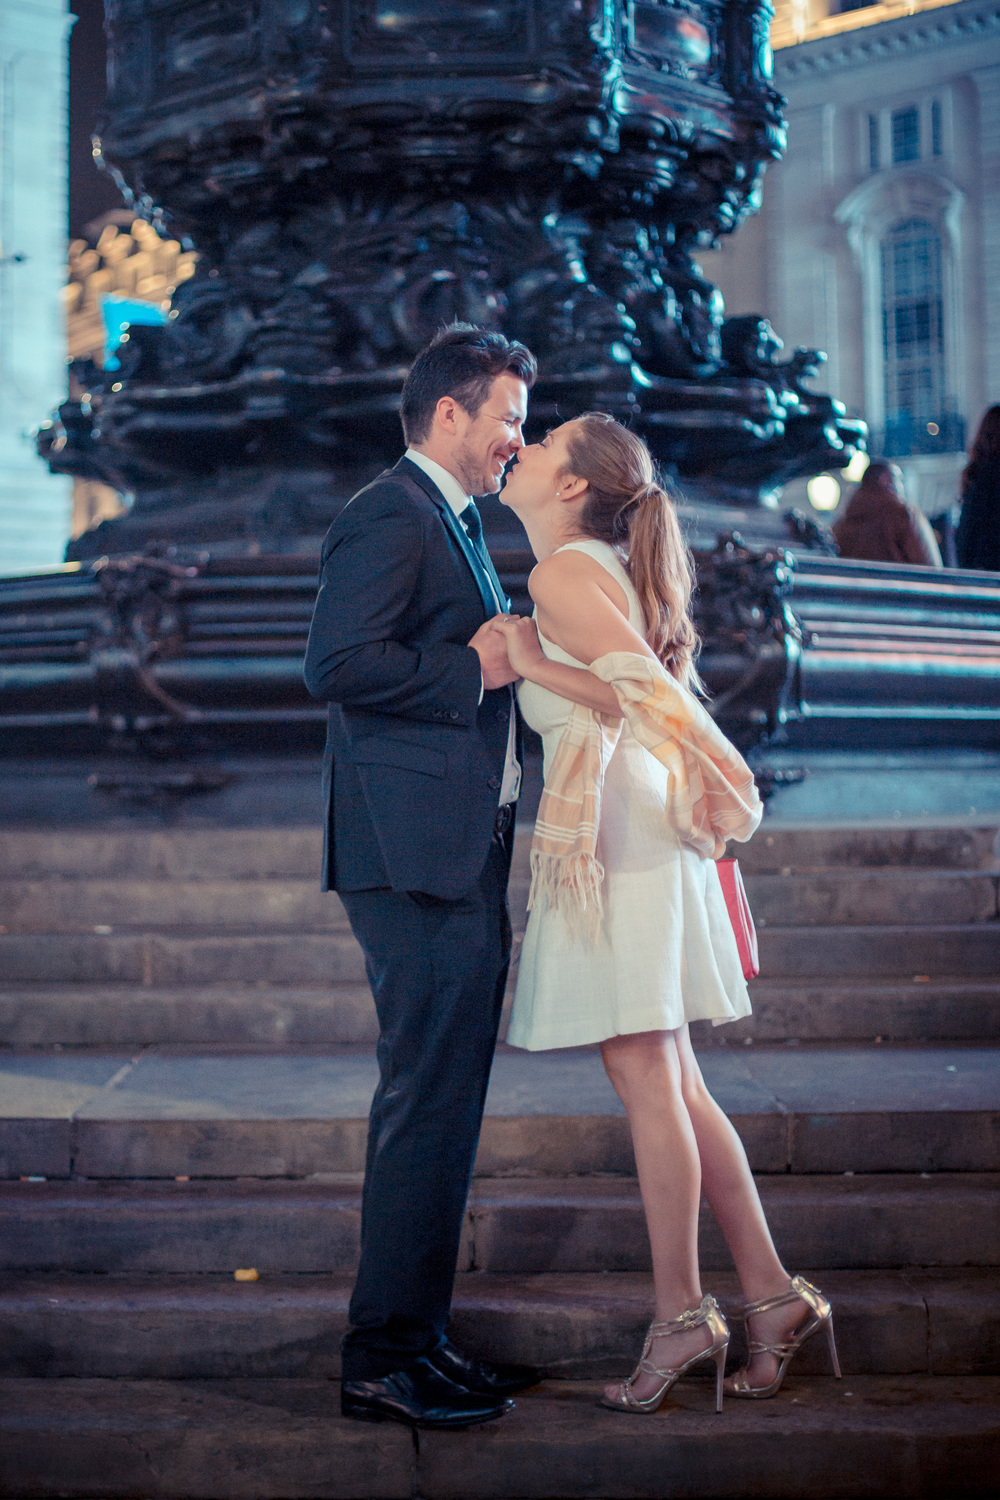 proposal-statues-in-piccadilly-circus-london7